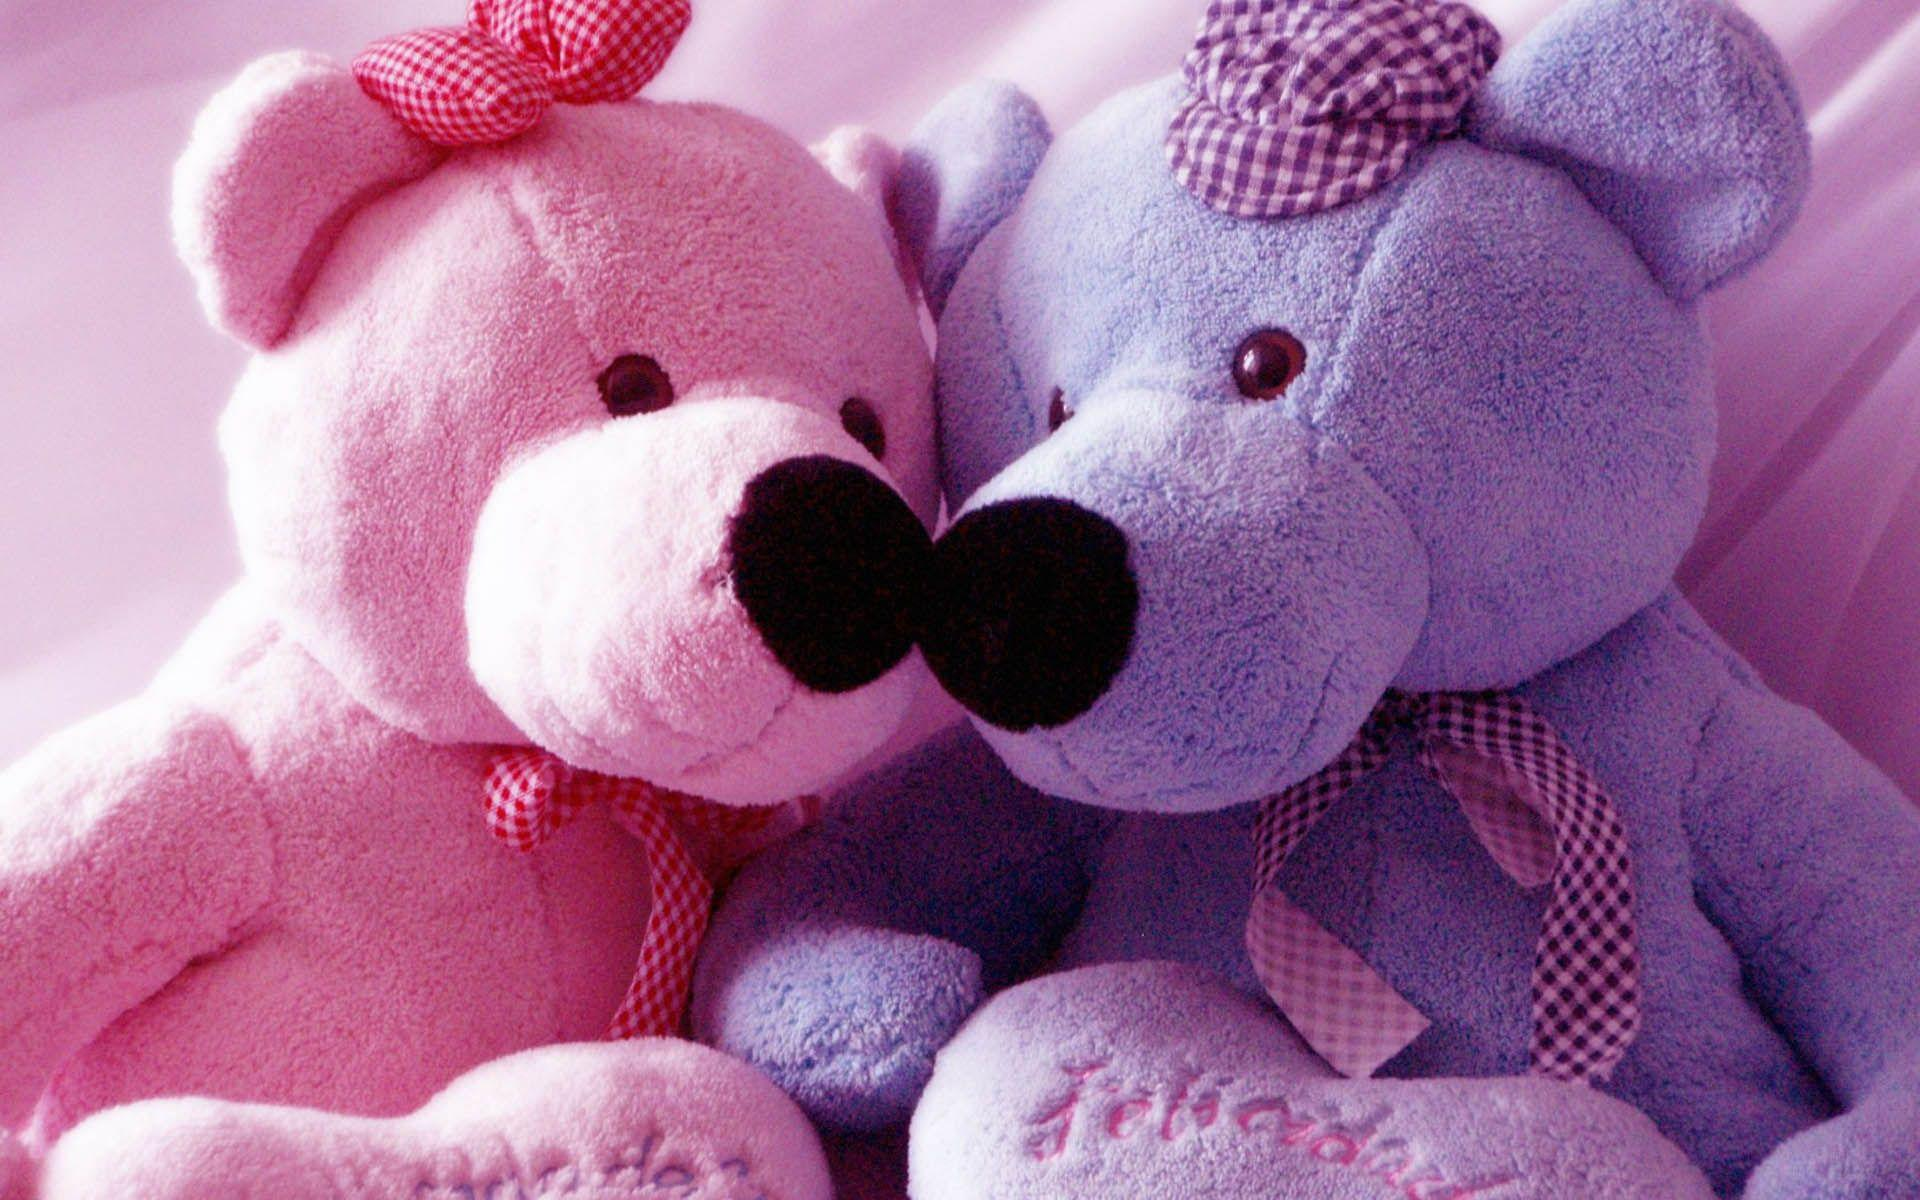 Pink And Blue Teddy Bear Wallpaper Computer 62 7639